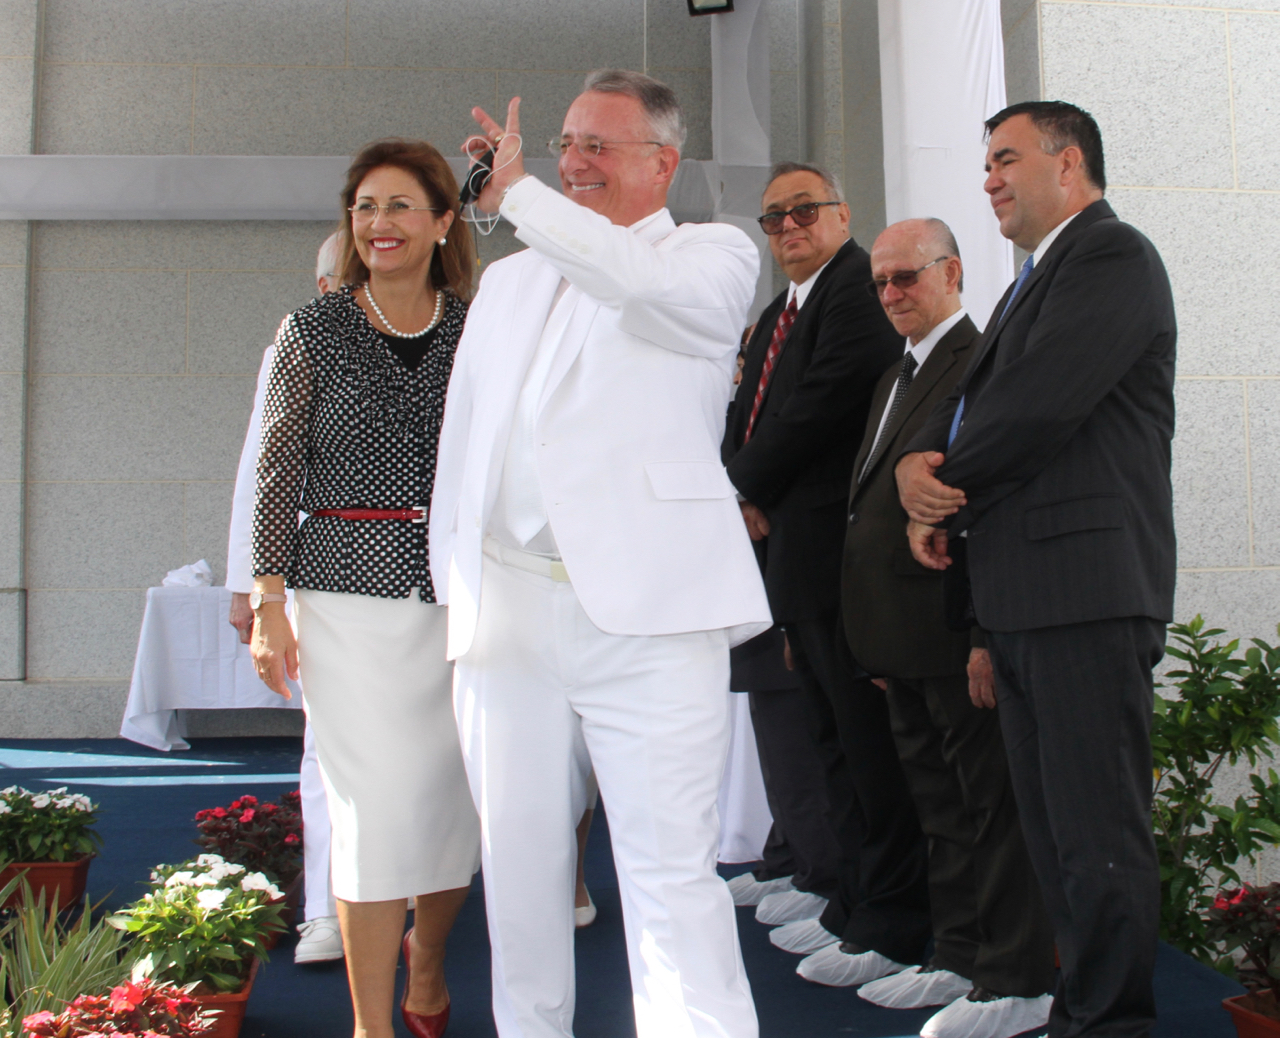 Elder Ulisses Soares of the Quorum of the Twelve Apostles, with his wife, Sister Rosasa Soares, waves to members after the cornerstone ceremony portion of the dedication session of the Fortaleza Brazil Temple on Sunday, June 2, 2019.